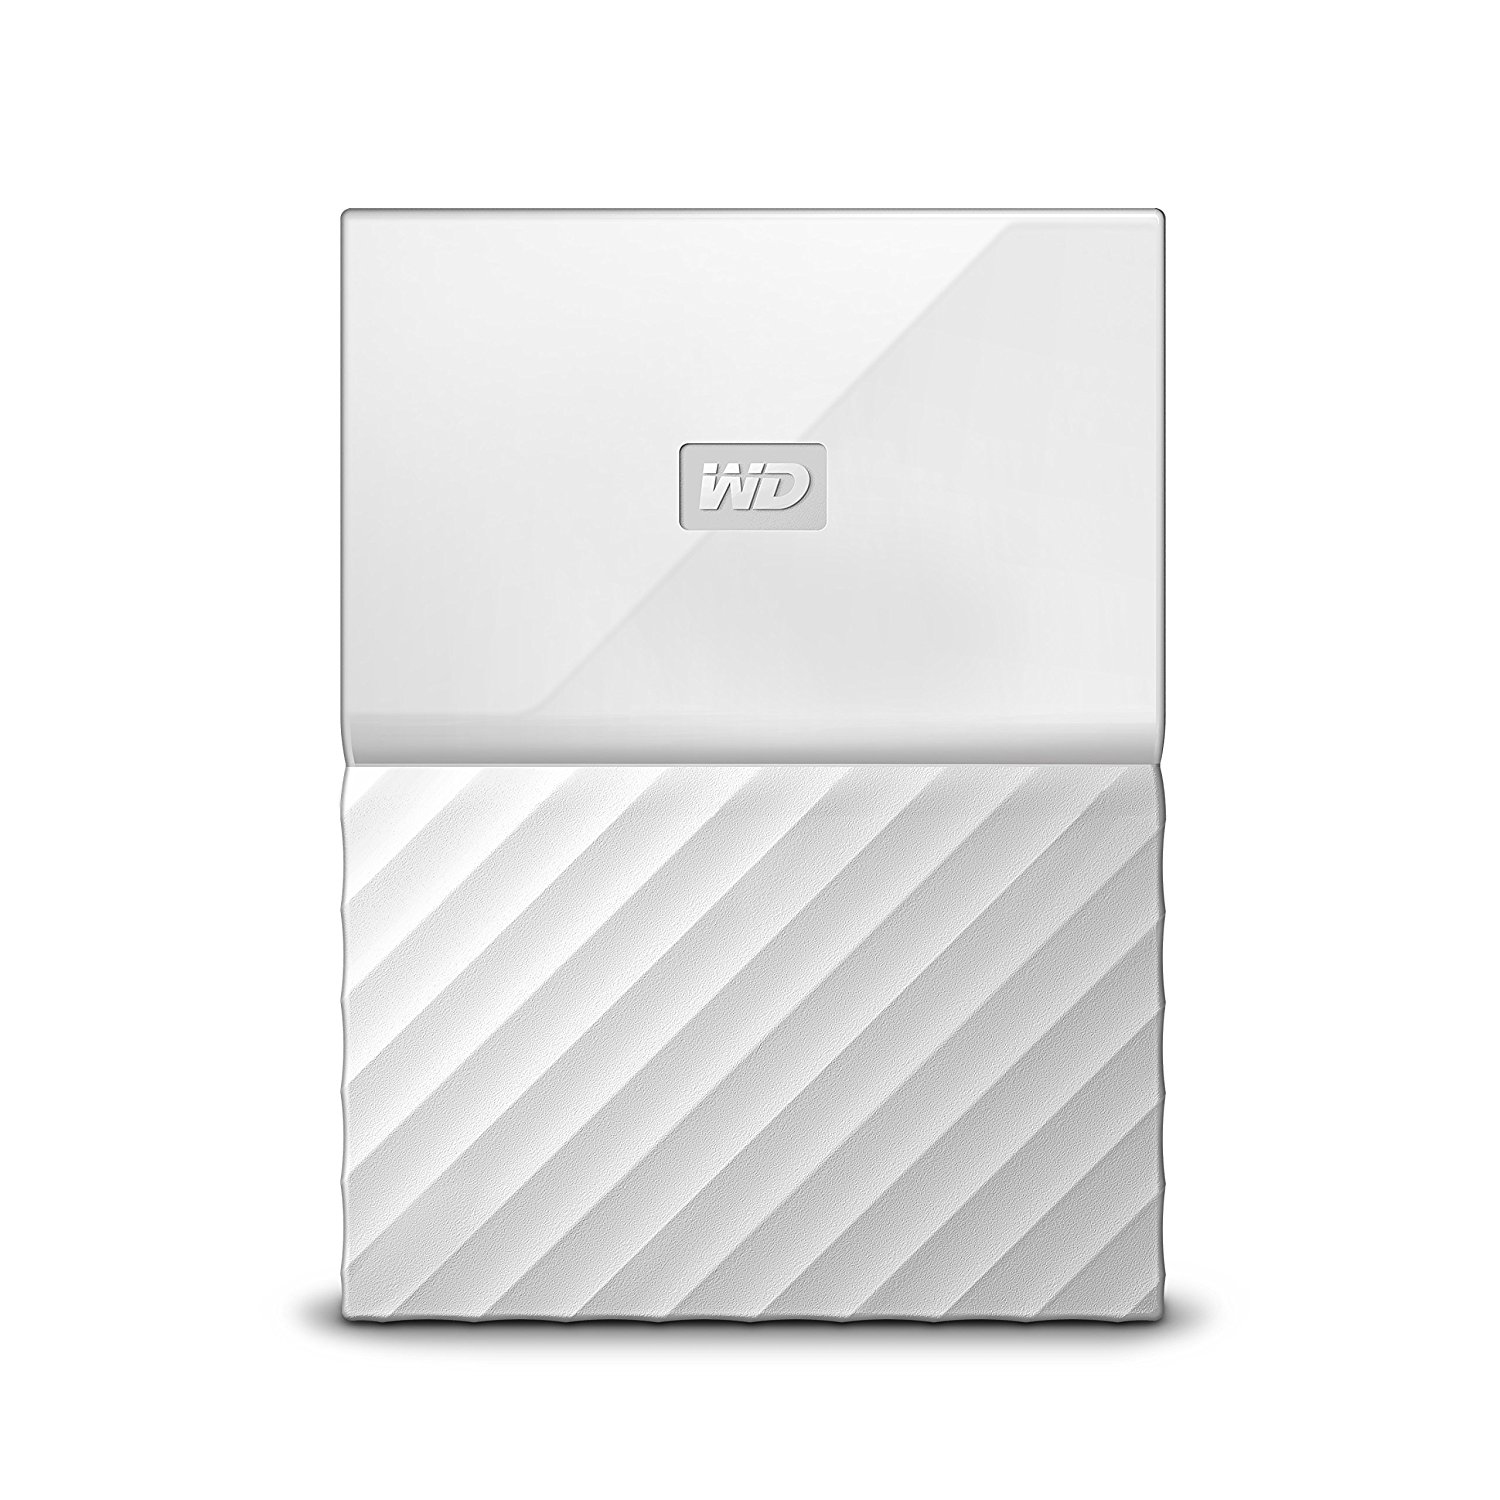 Western Digital My Passport 2TB White External Hard Drive